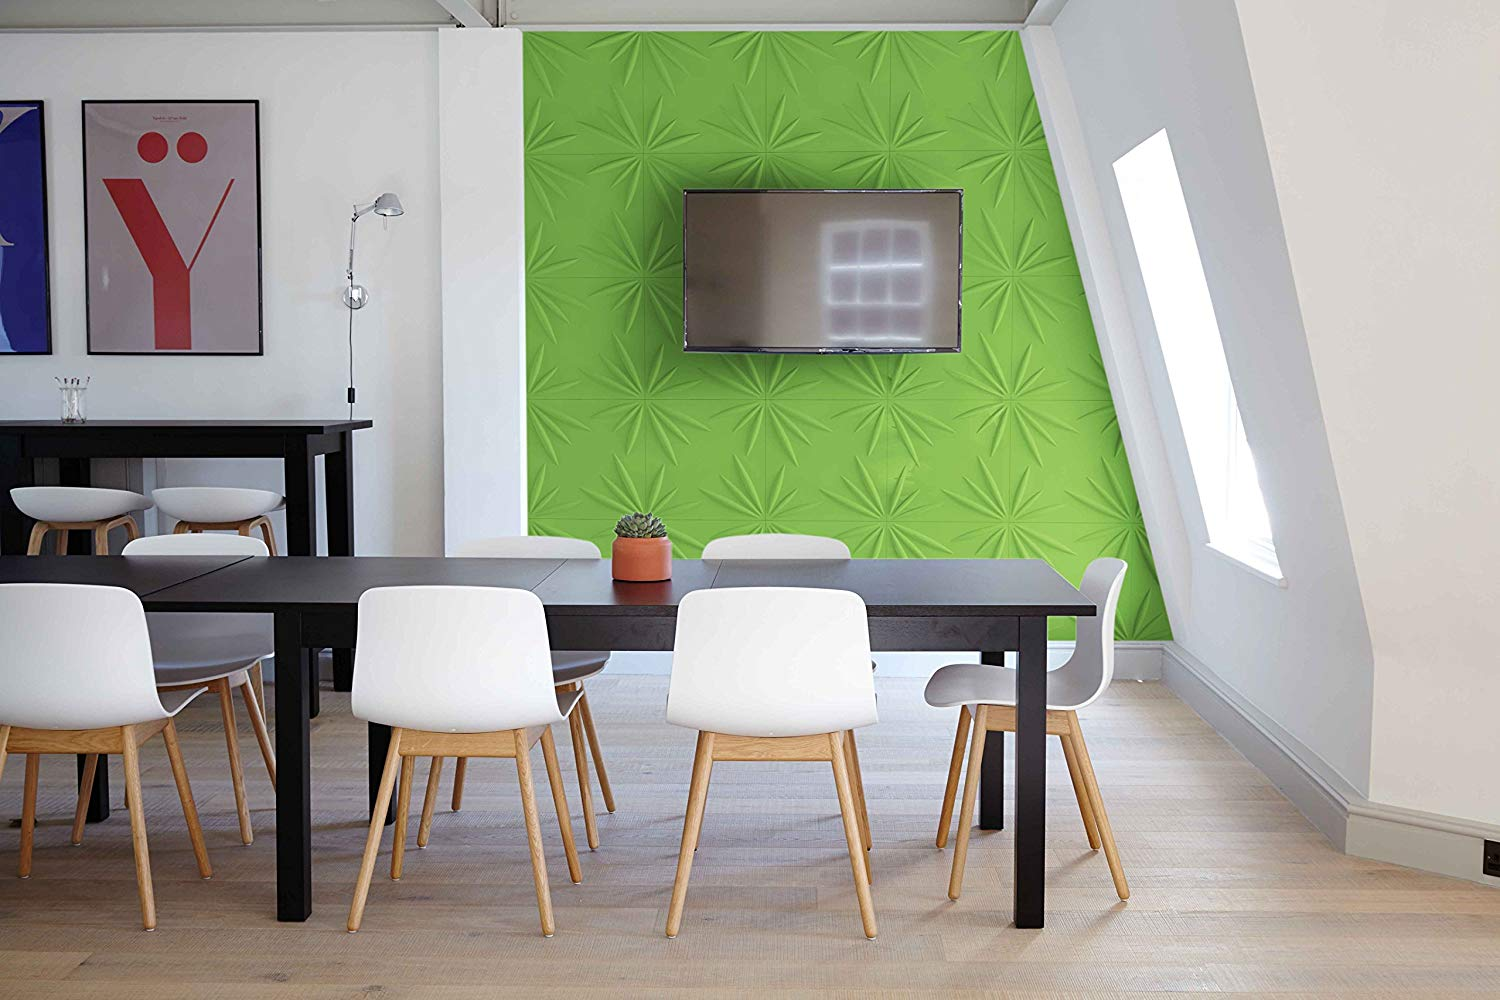 Milan Model Design Boards Decorative 3D Wall Panels Textured Pack of 12 Tiles